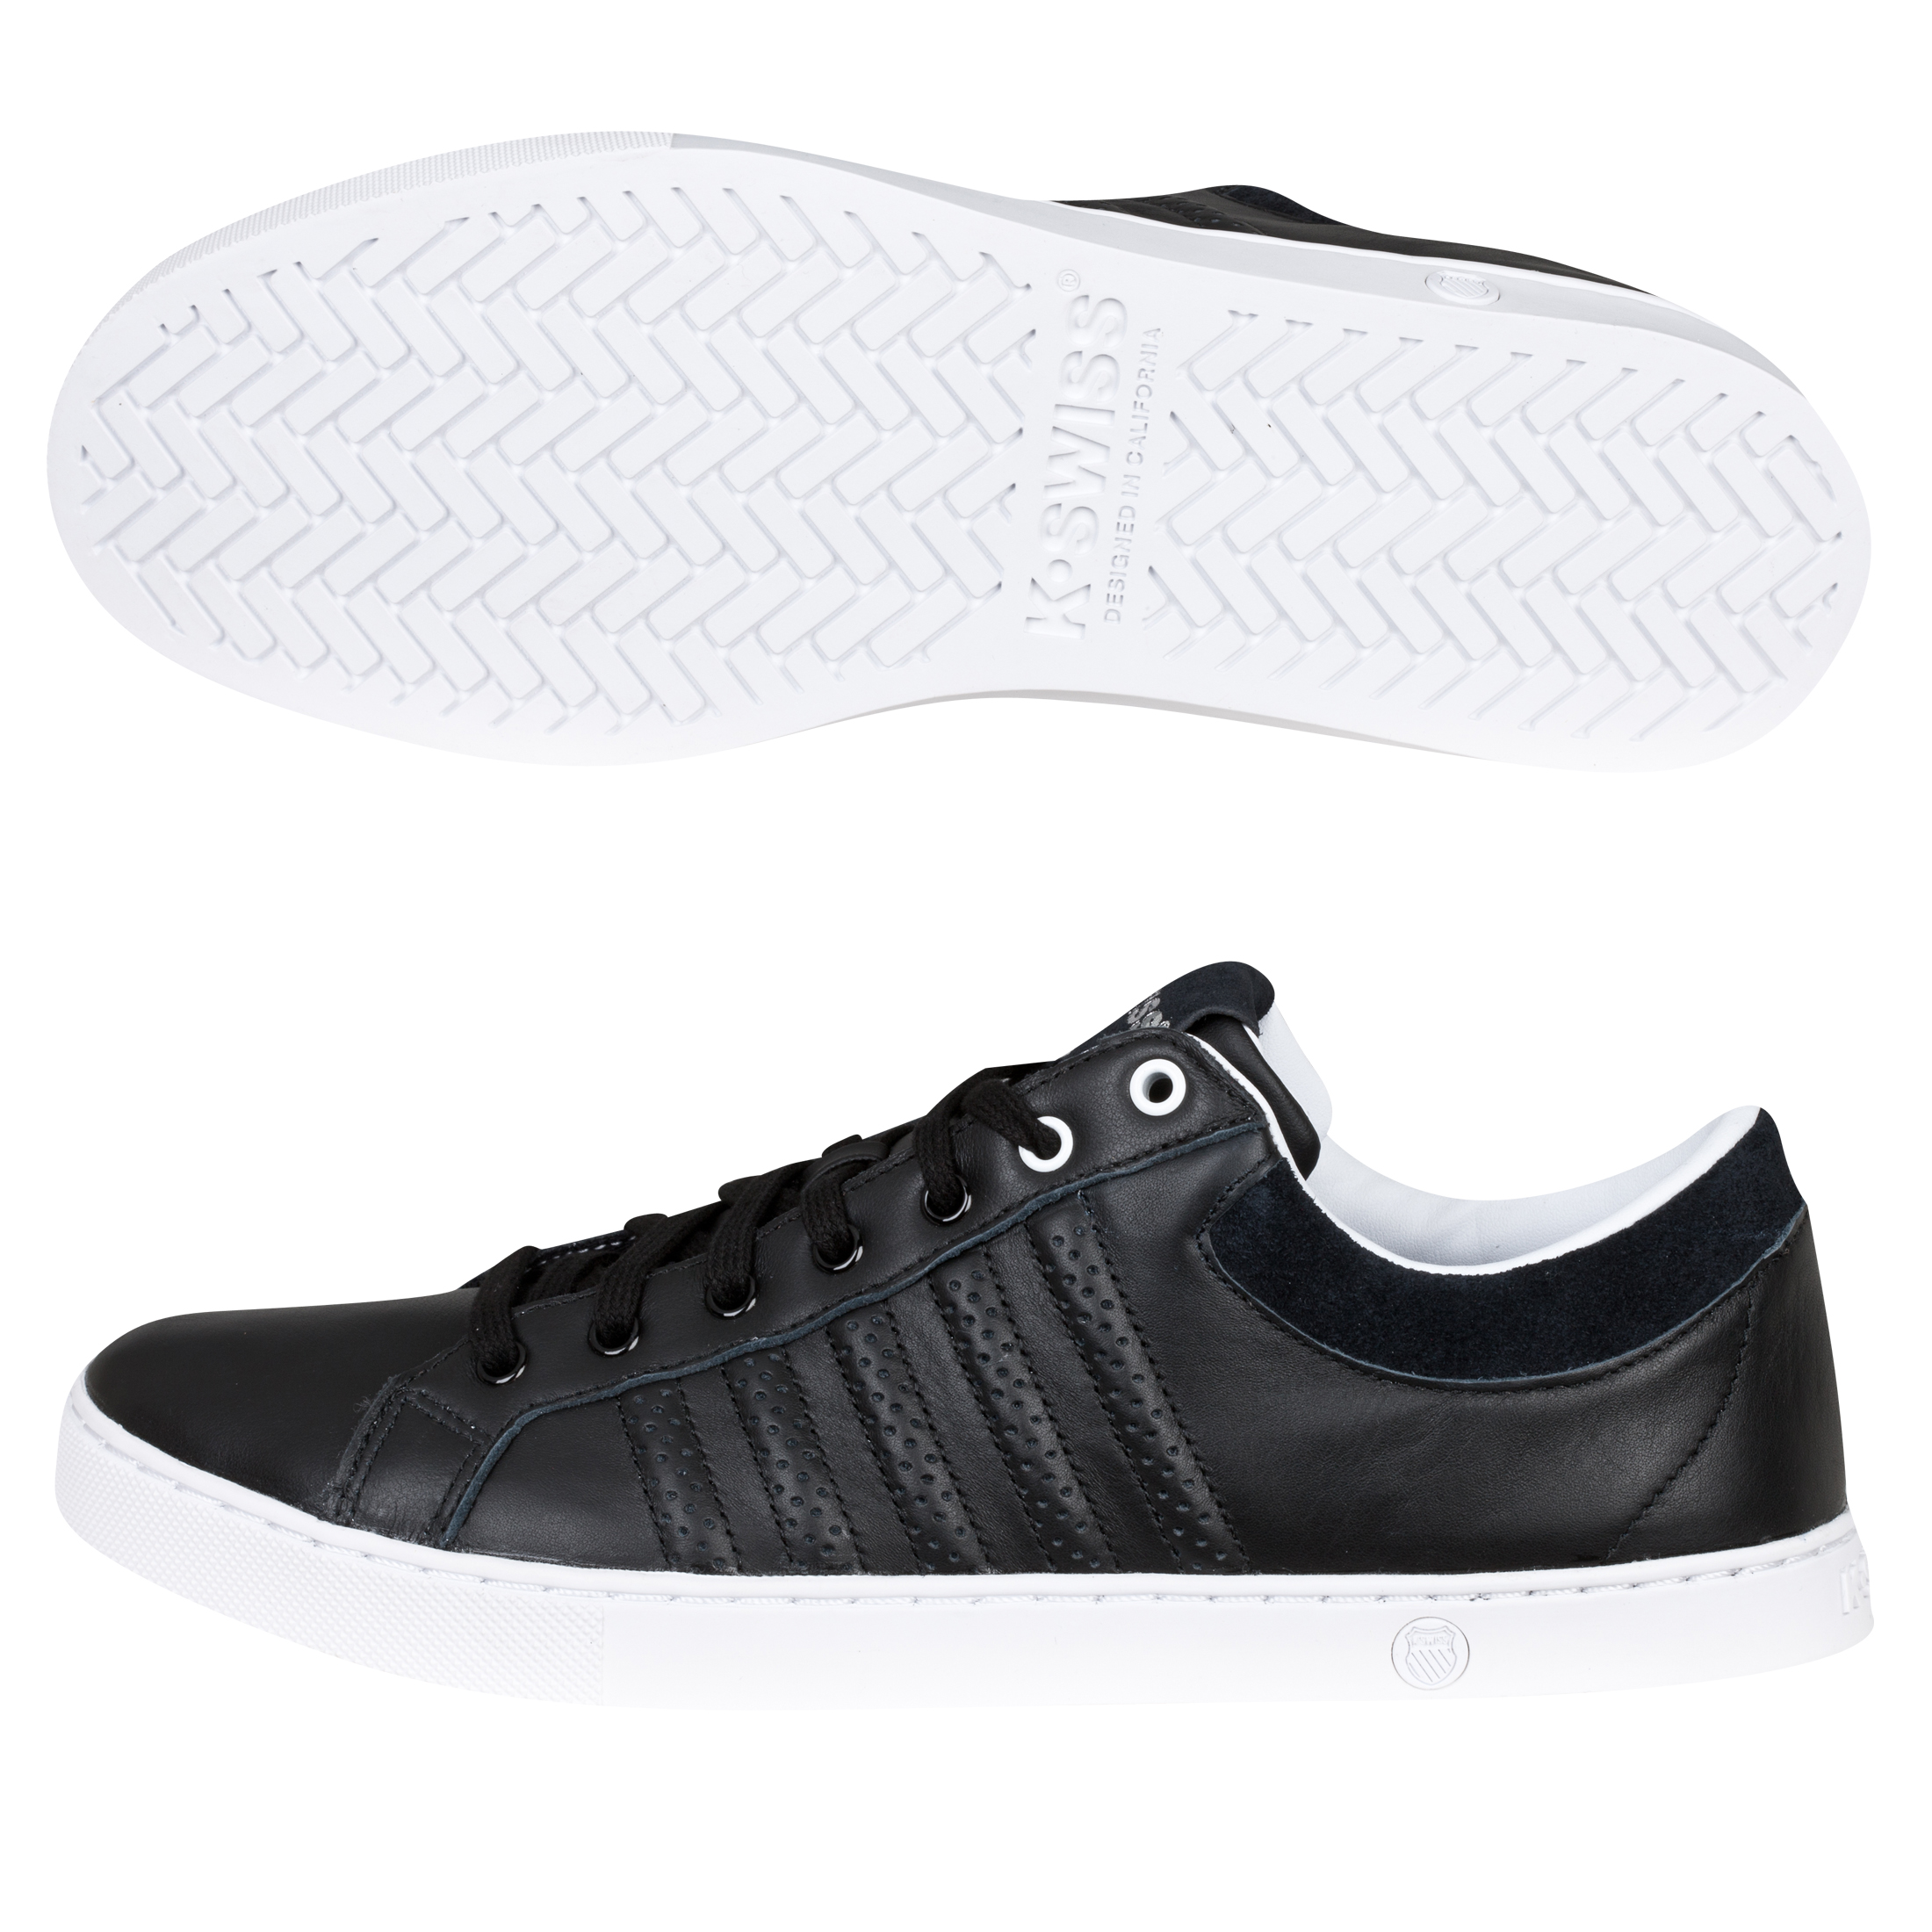 K-Swiss Adcourt 72 Trainers - Black/White